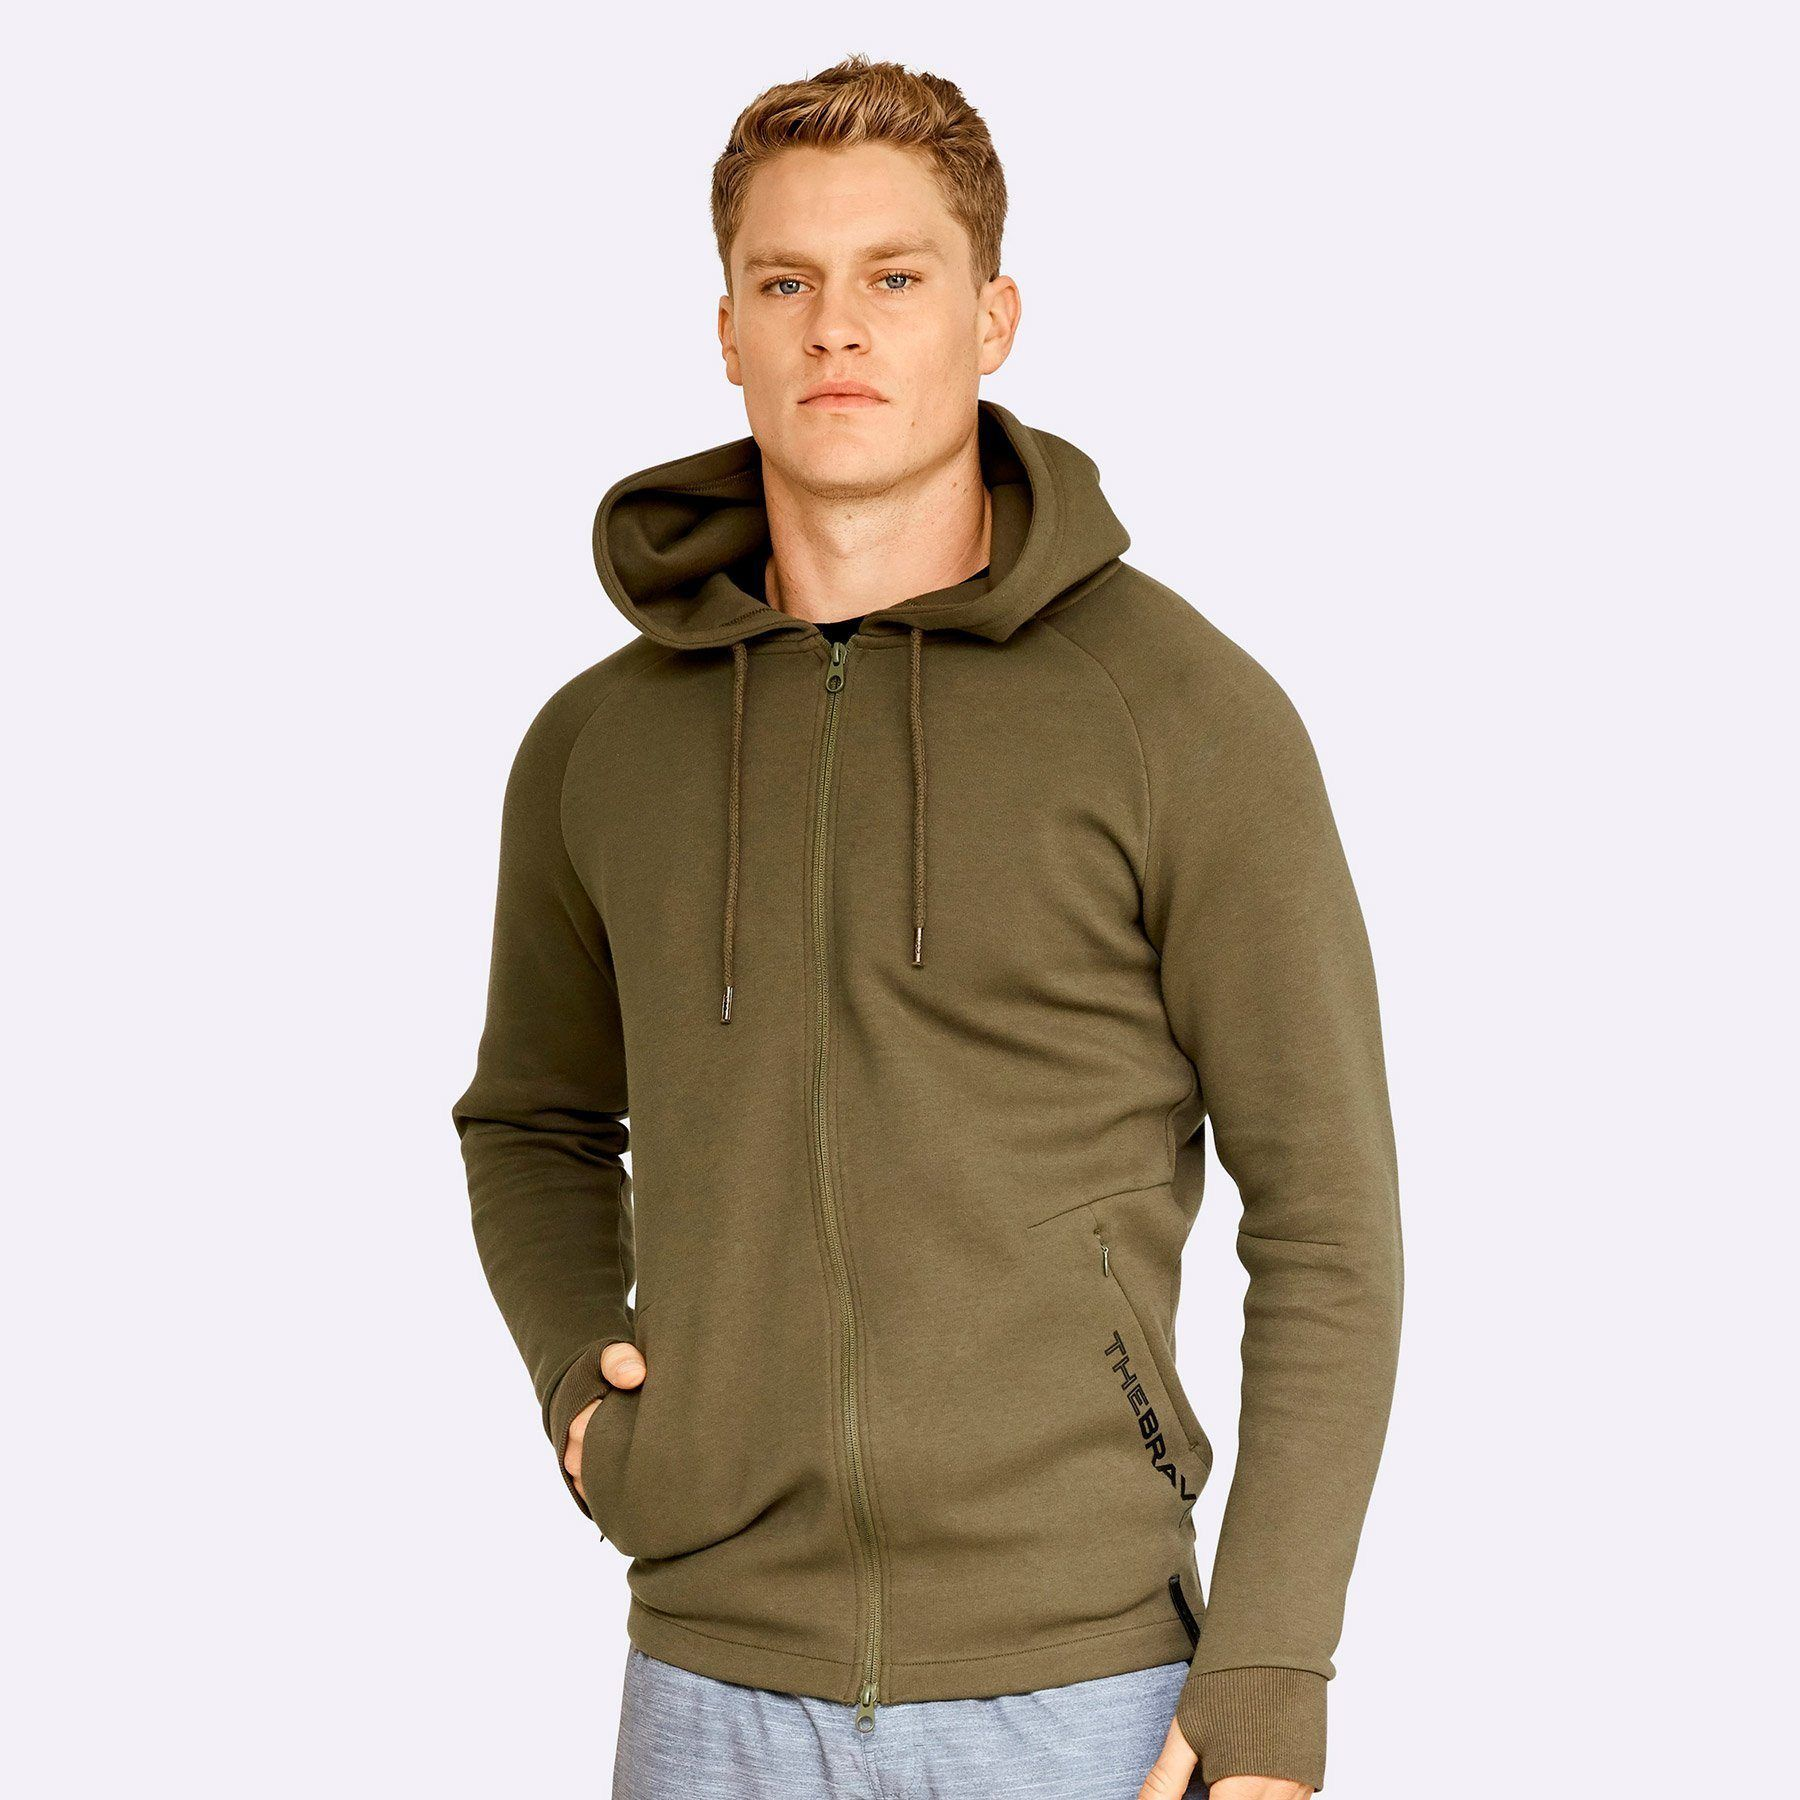 The Brave - Men's Zip Through Hoodie - Dark Olive